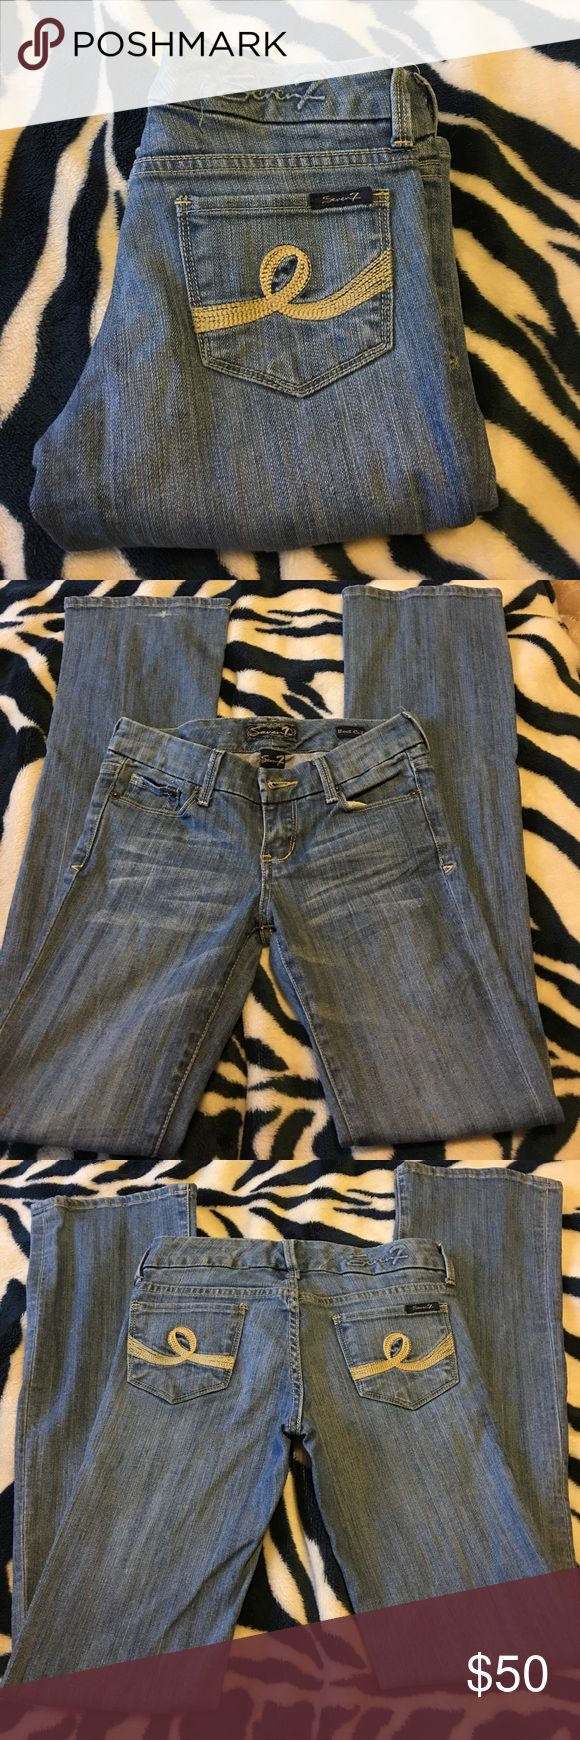 🔥SALE🔥seven jeans The seven jeans are very lightly used, still perfect in color, very comfortable, perfect for casual or dressy.  Offers are welcomed Seven7 Jeans Boot Cut